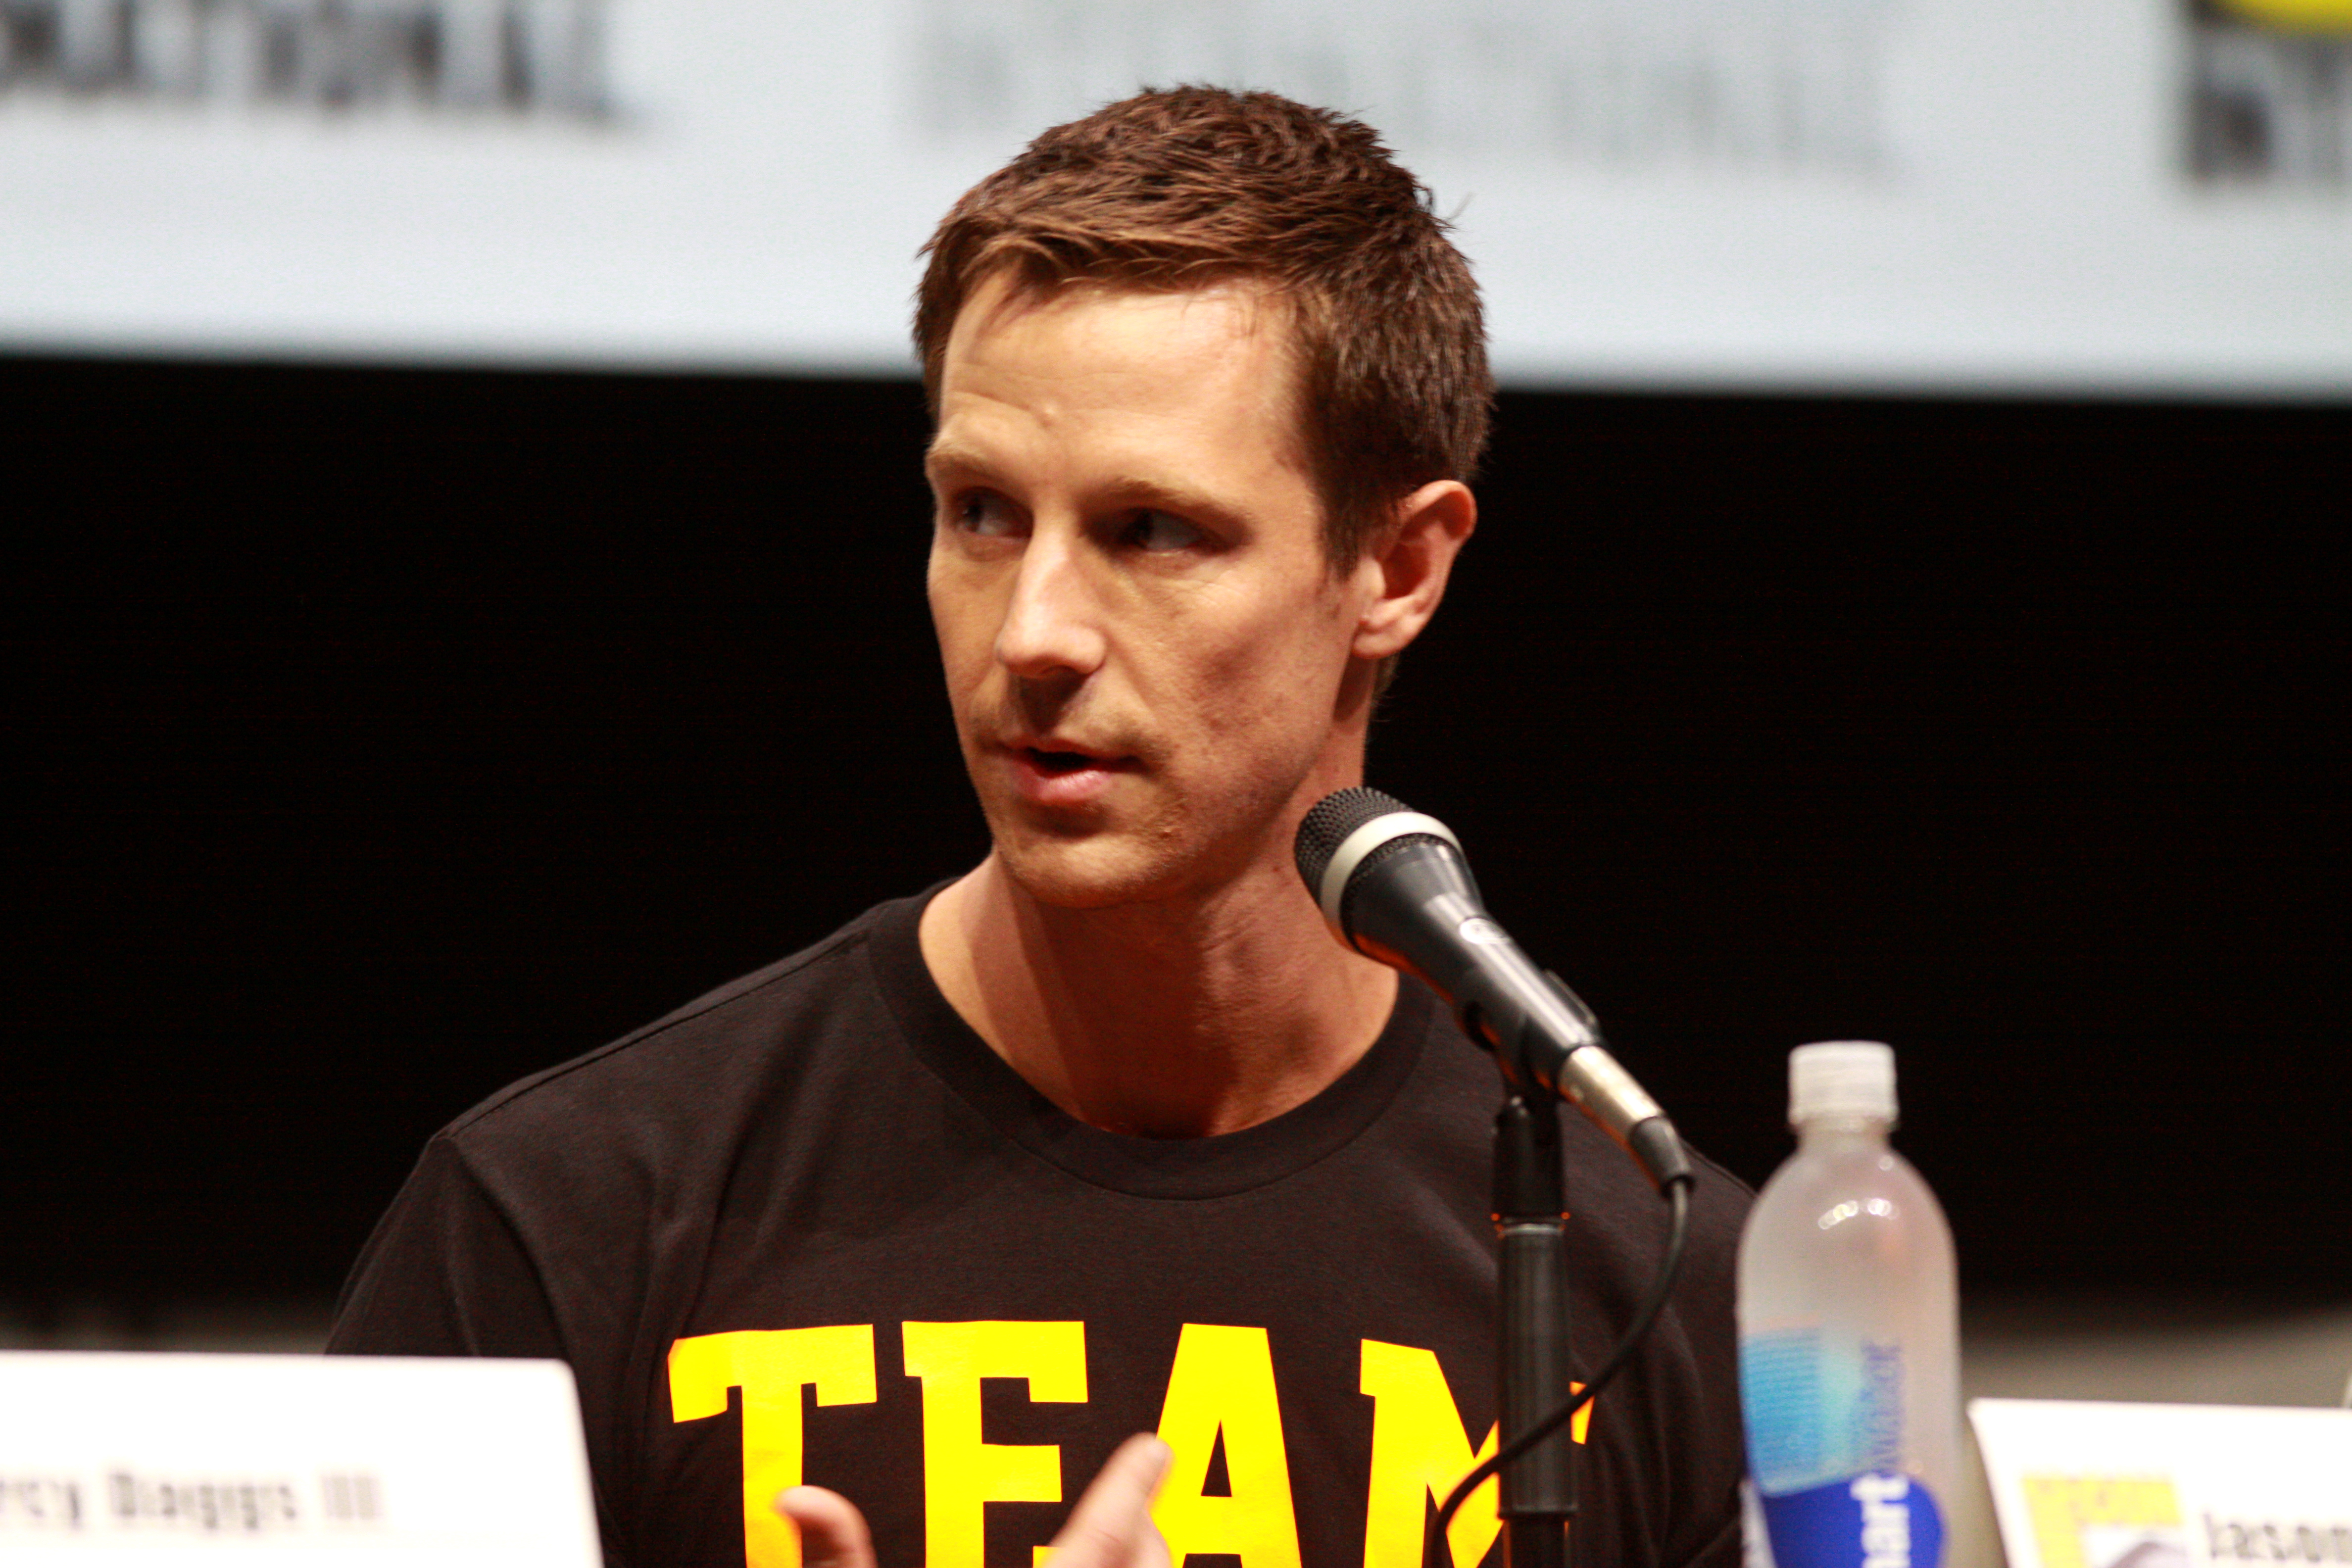 jason dohring supernatural